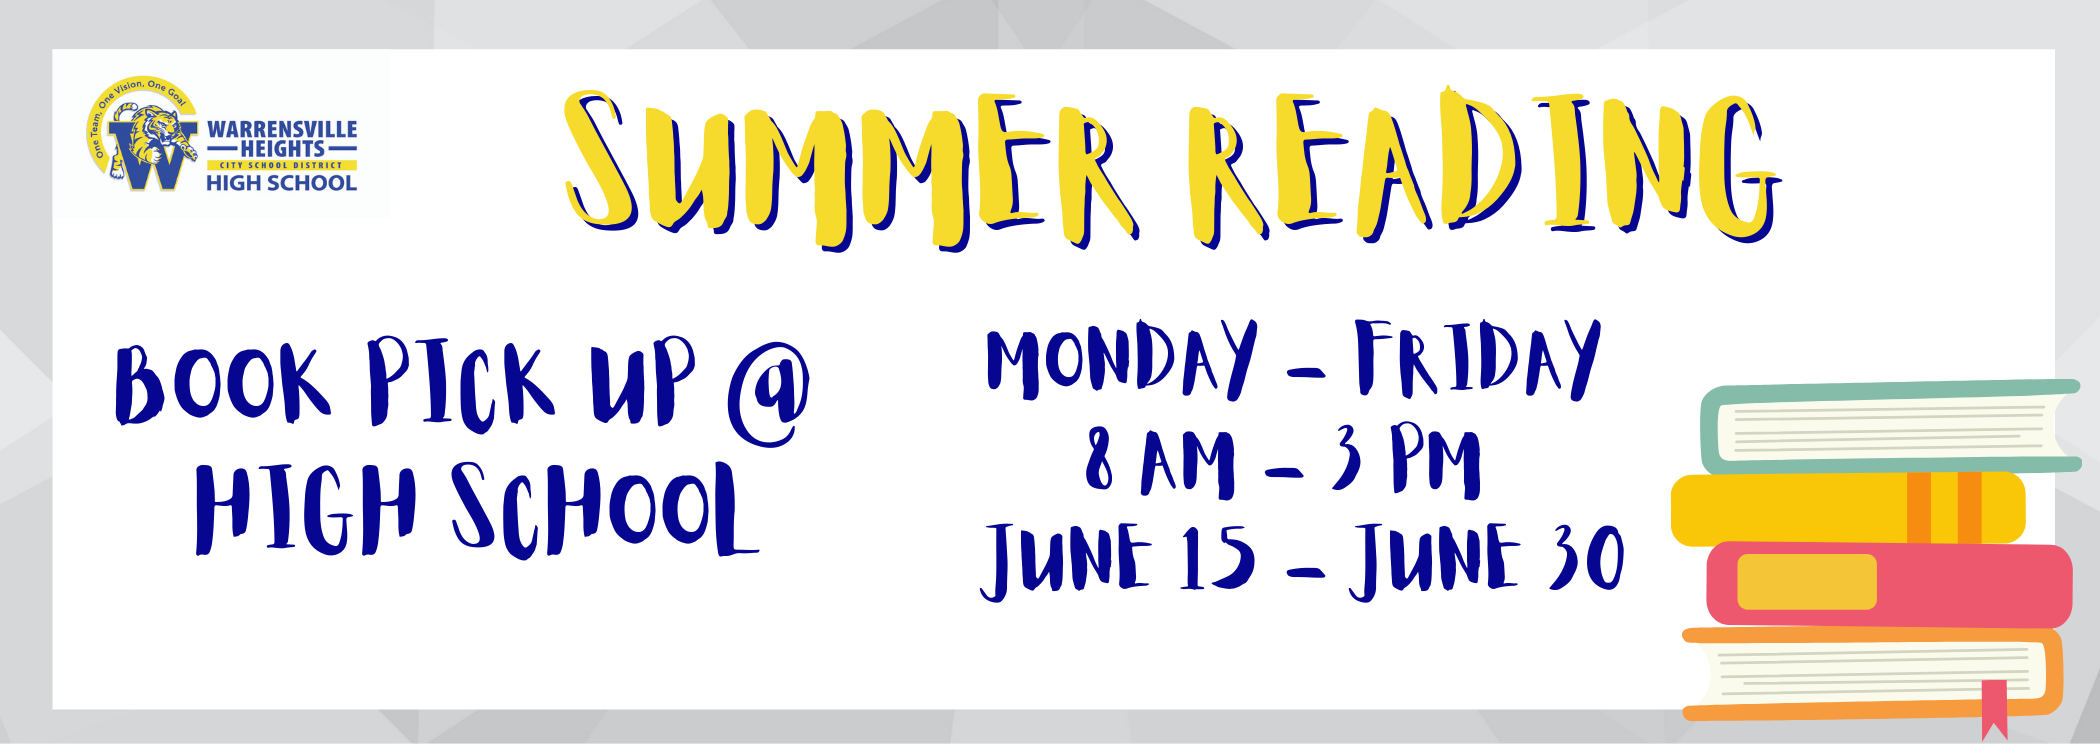 summer reading book pick up at the high school monday through friday 8 am to 3 pm june 15 to june 30